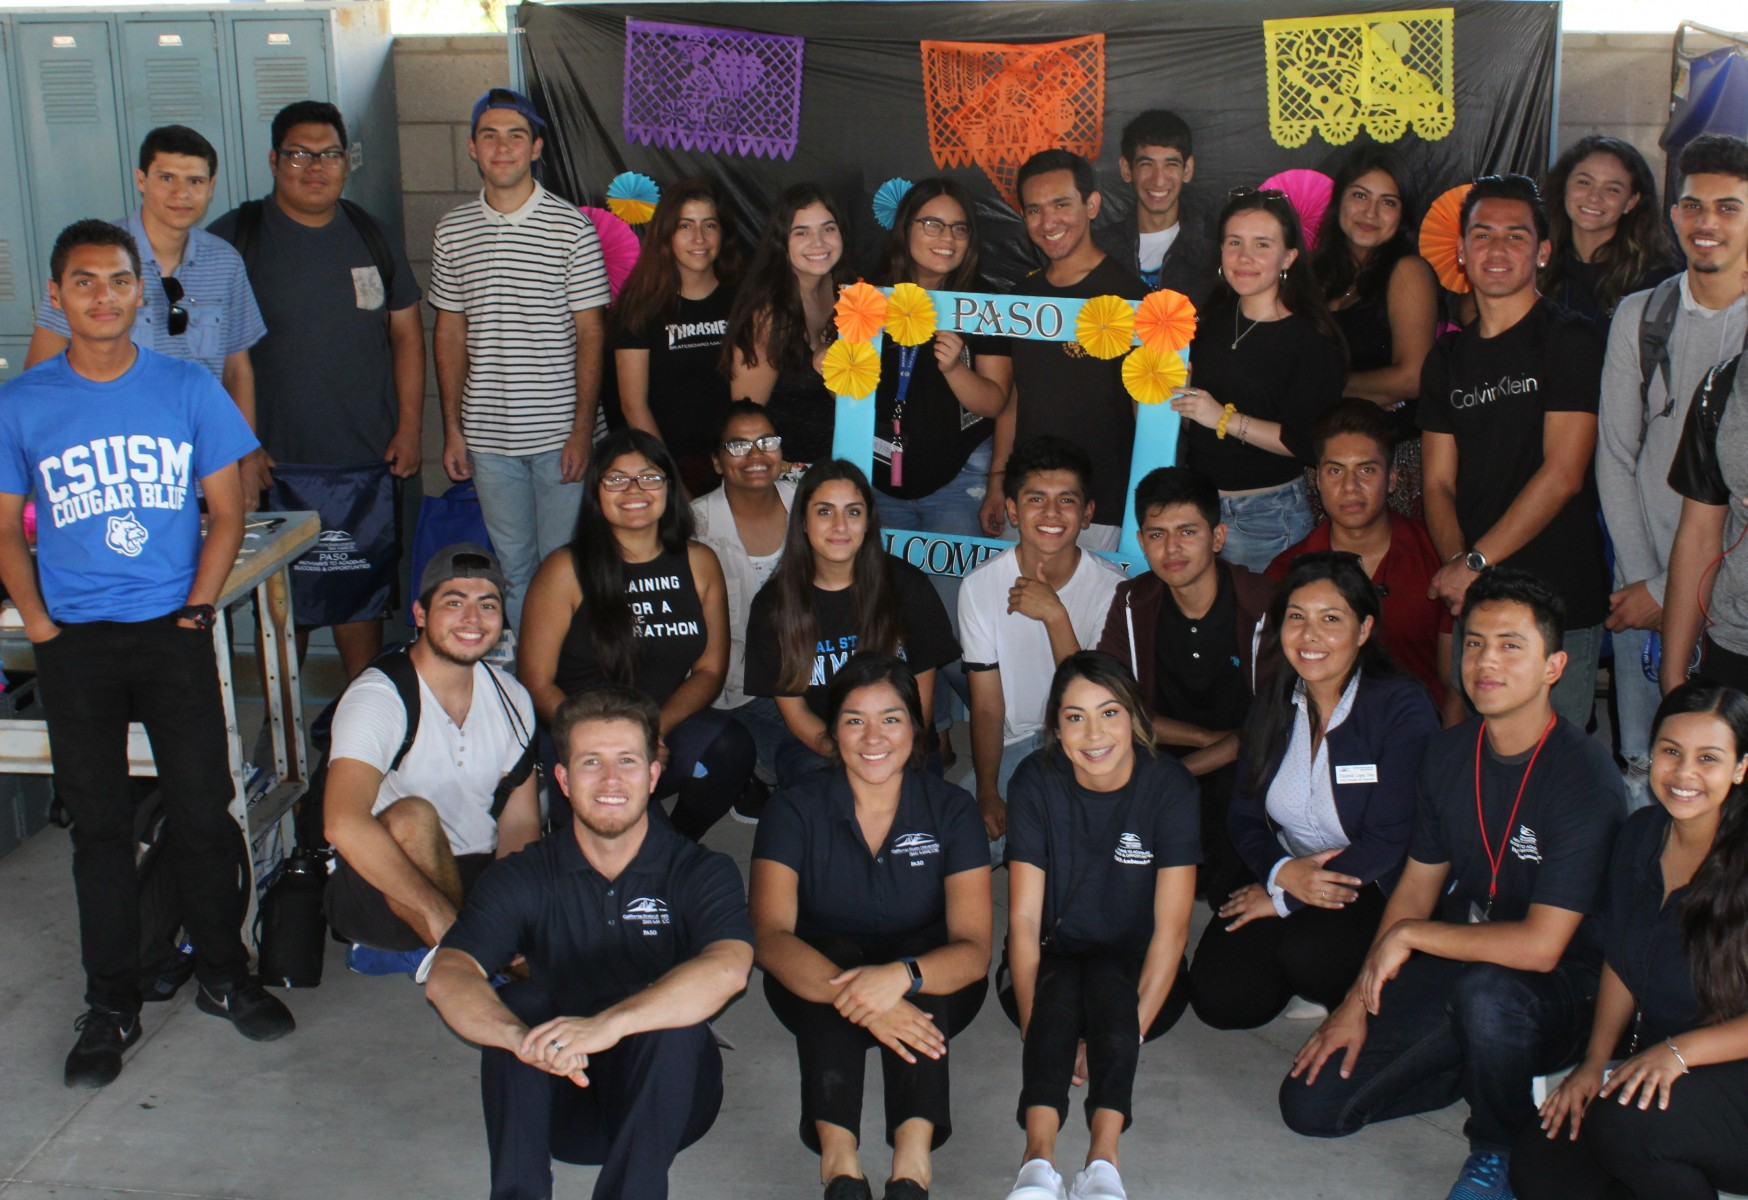 PASO students and employees on campus before the start of the pandemic.